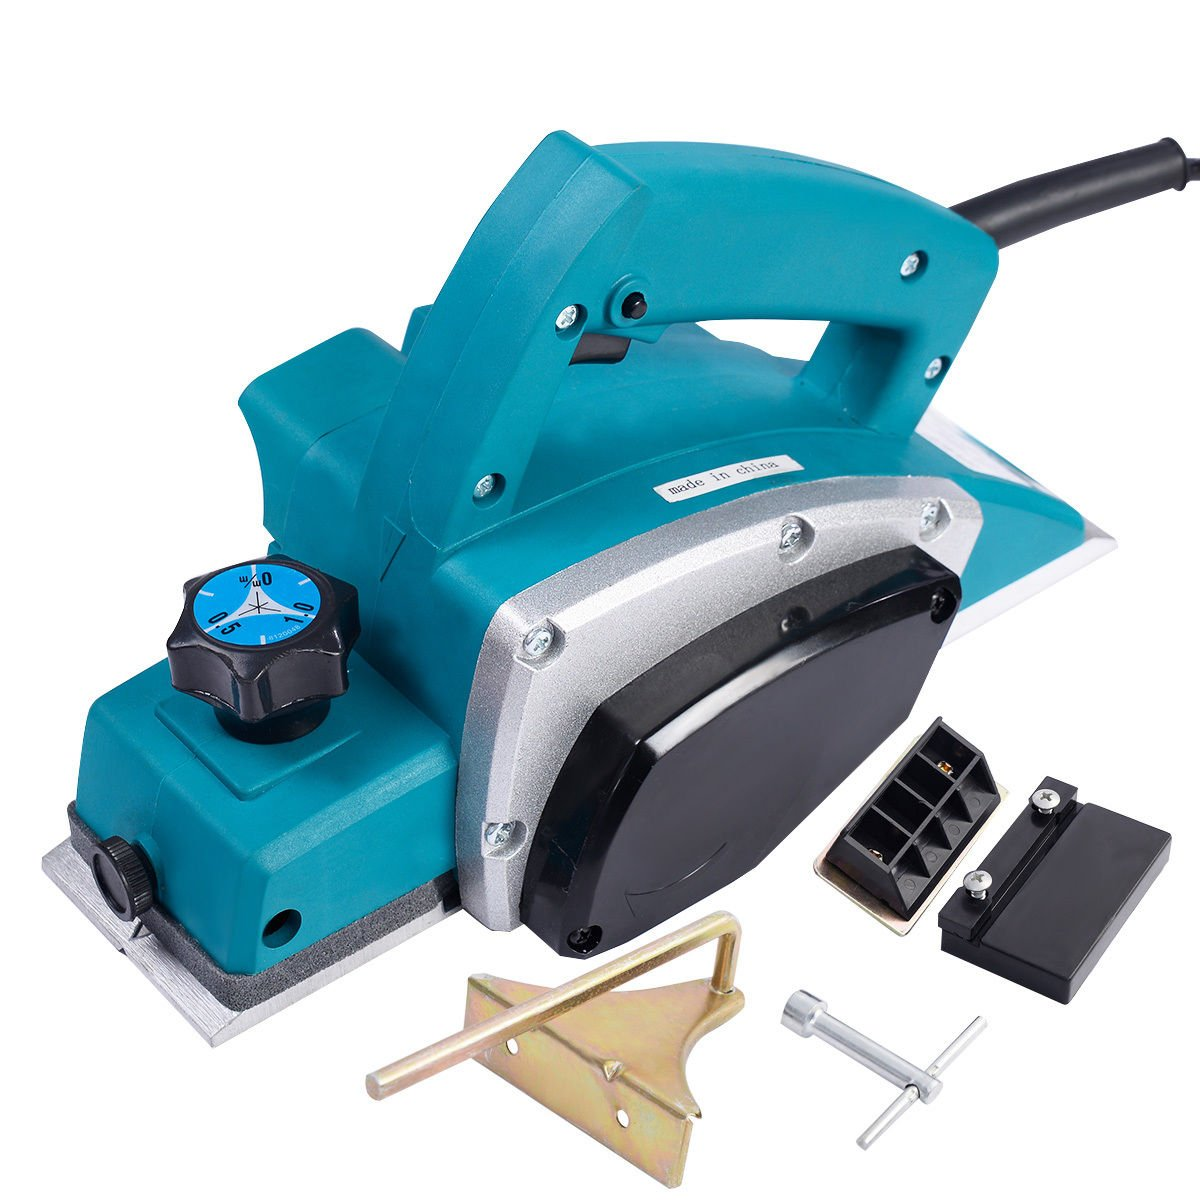 NEW Powerful Electric Wood Planer Door Plane Hand Held Woodworking Surface